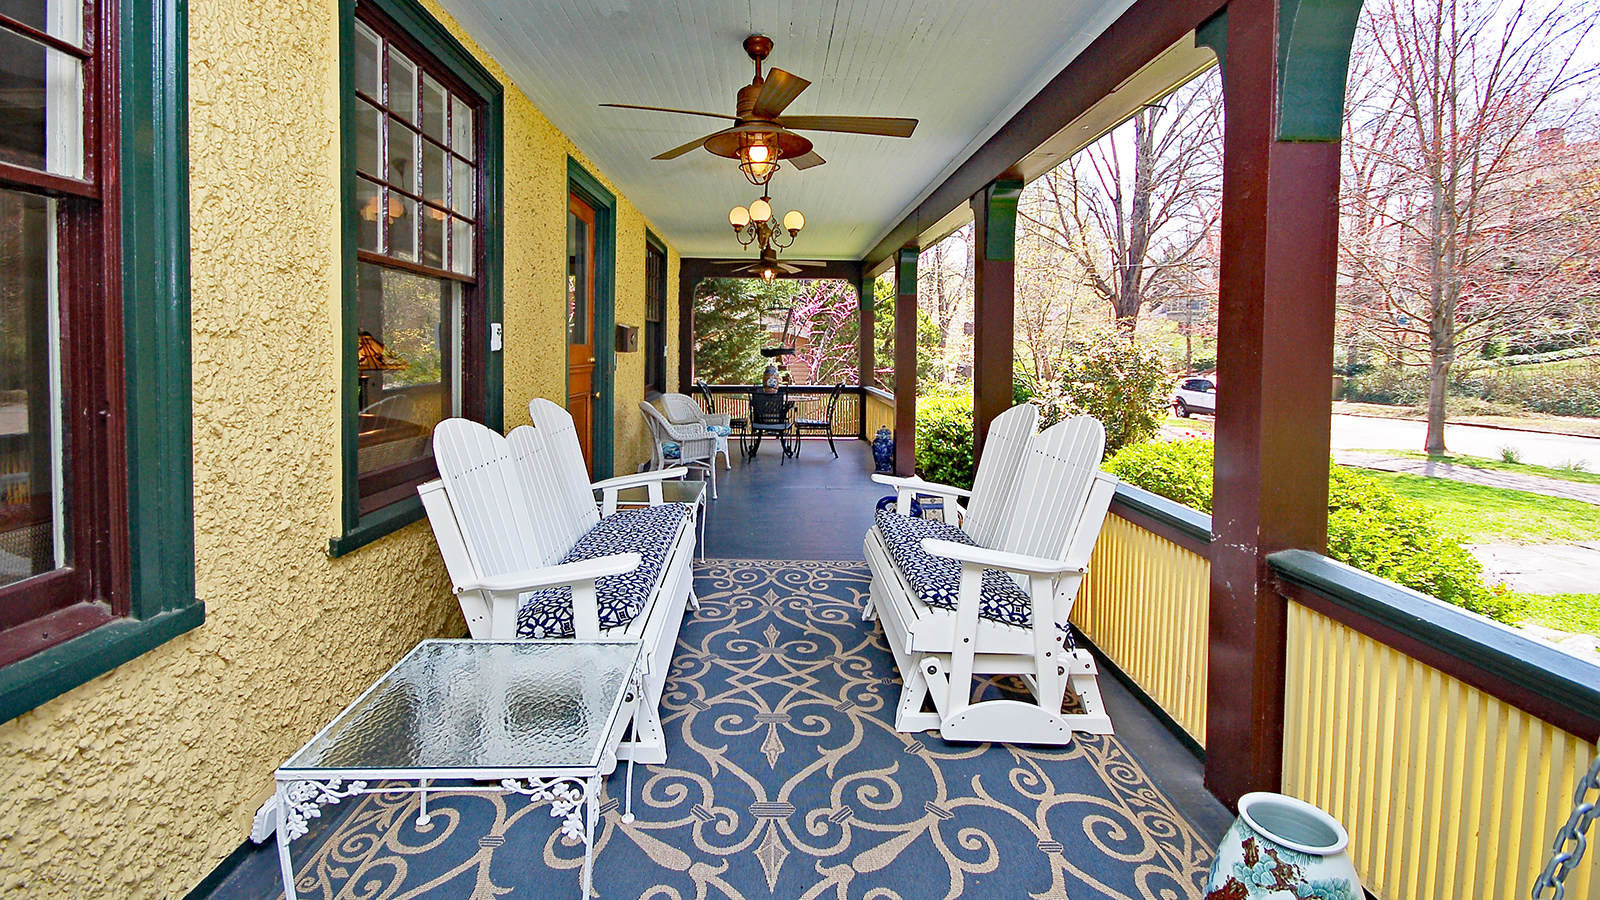 Asheville Bed & Breakfast with Rocking Chair Porch